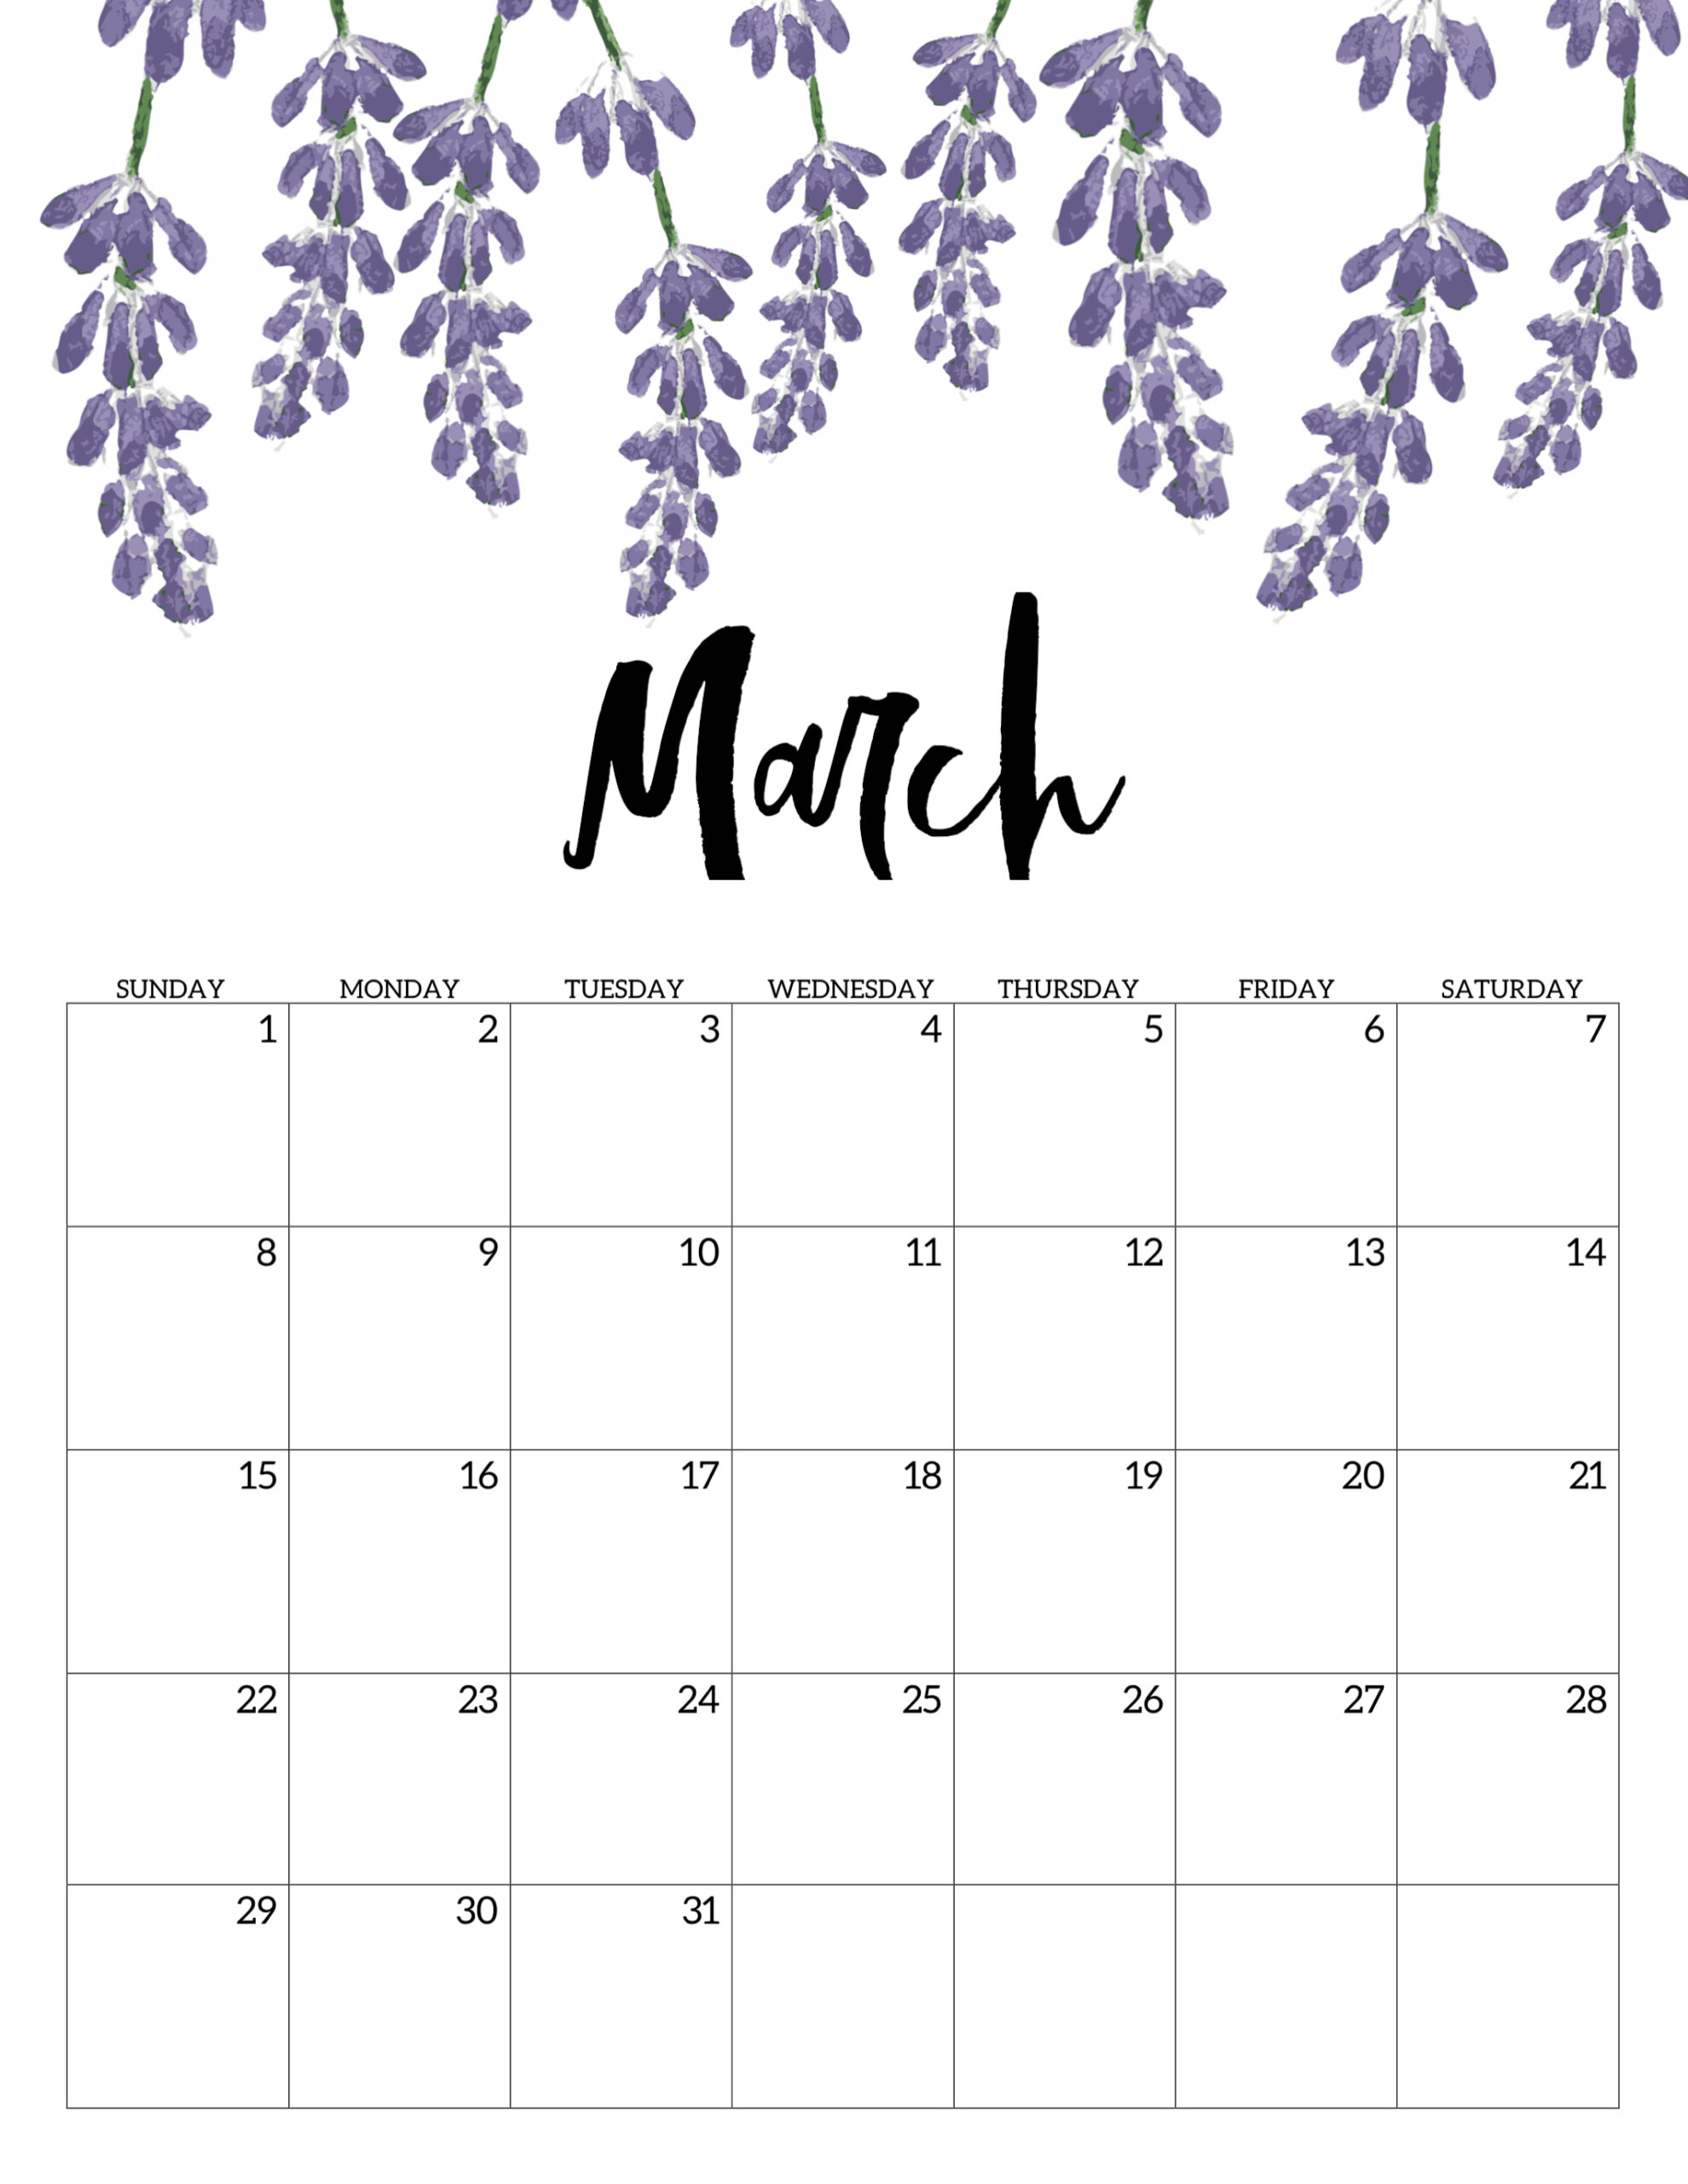 March 2020 Floral Calendar Template